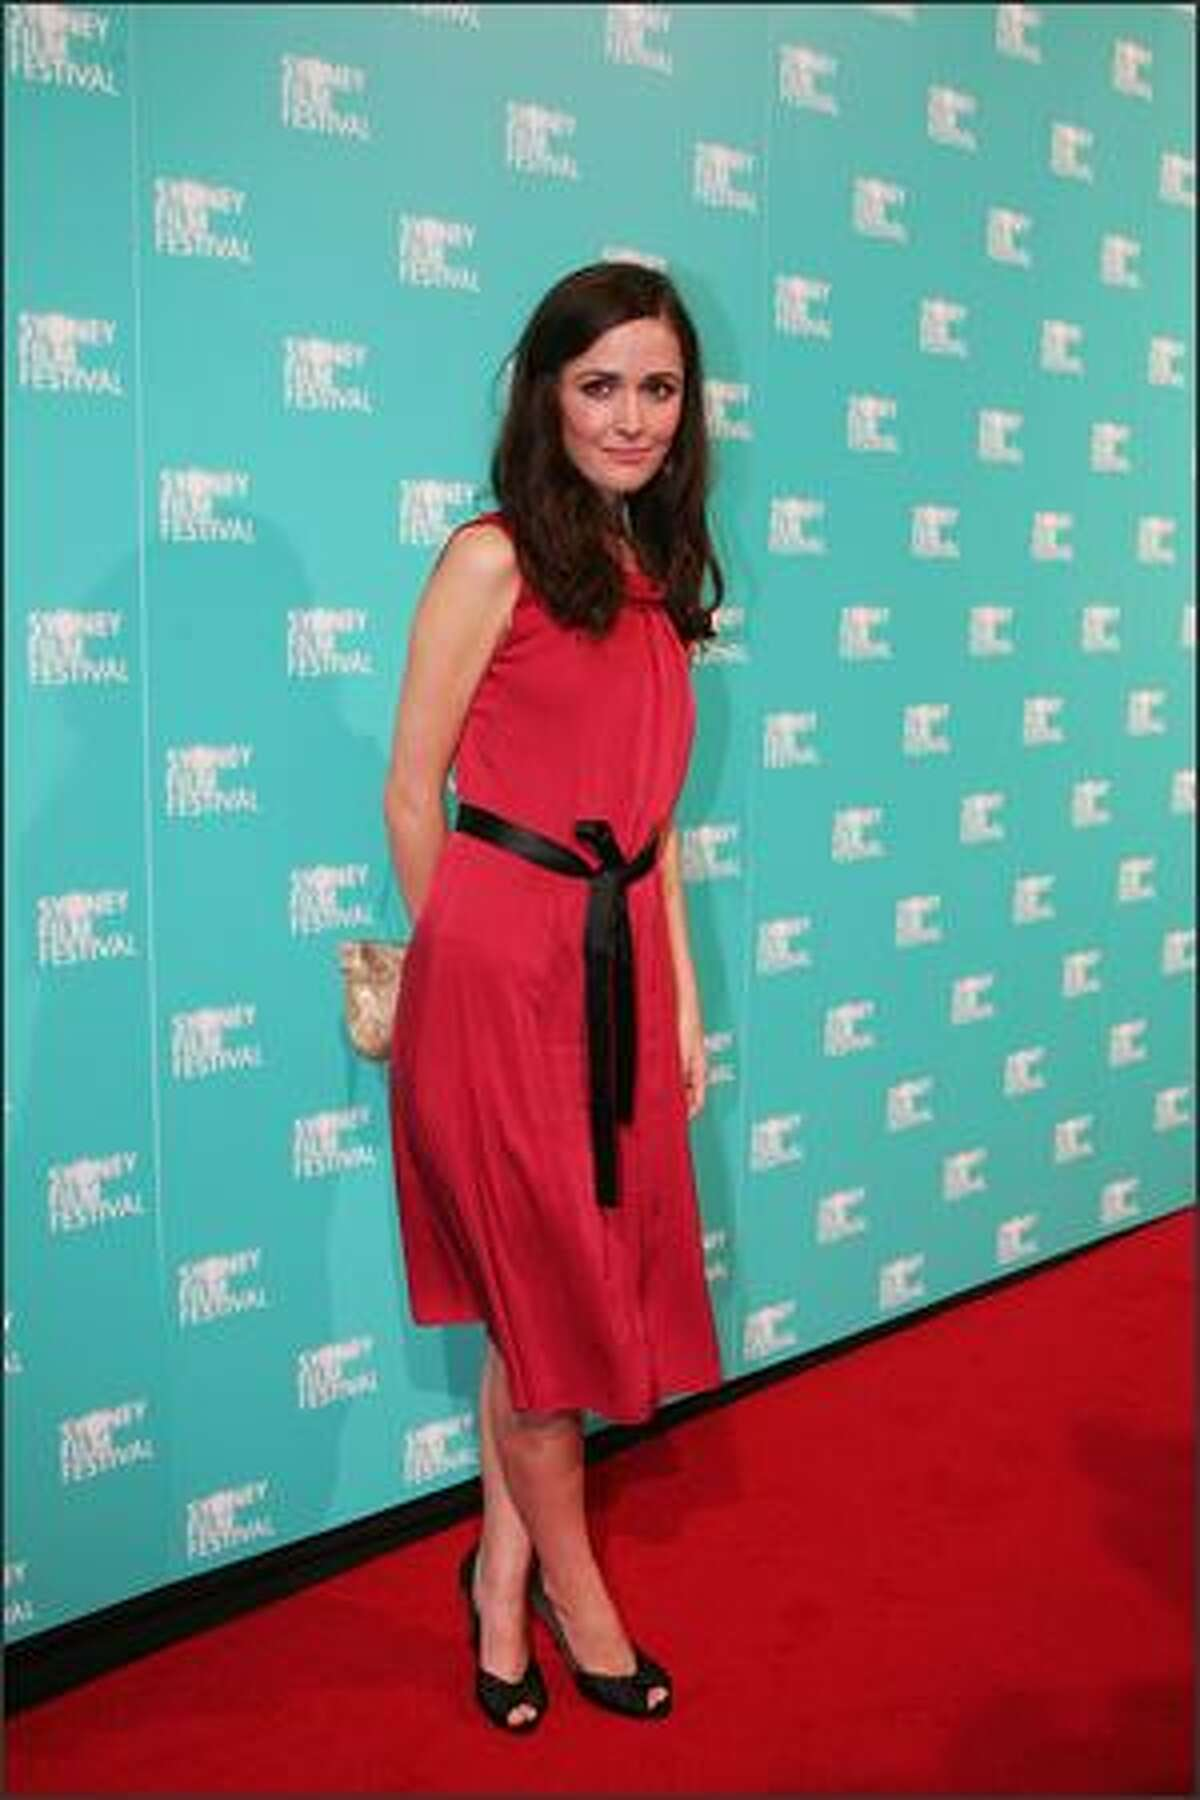 Actress Rose Byrne attends the opening gala night and premiere of 'Happy-Go-Lucky' during the 55th Sydney Film Festival at the State Theatre on Wednesday in Sydney, Australia.